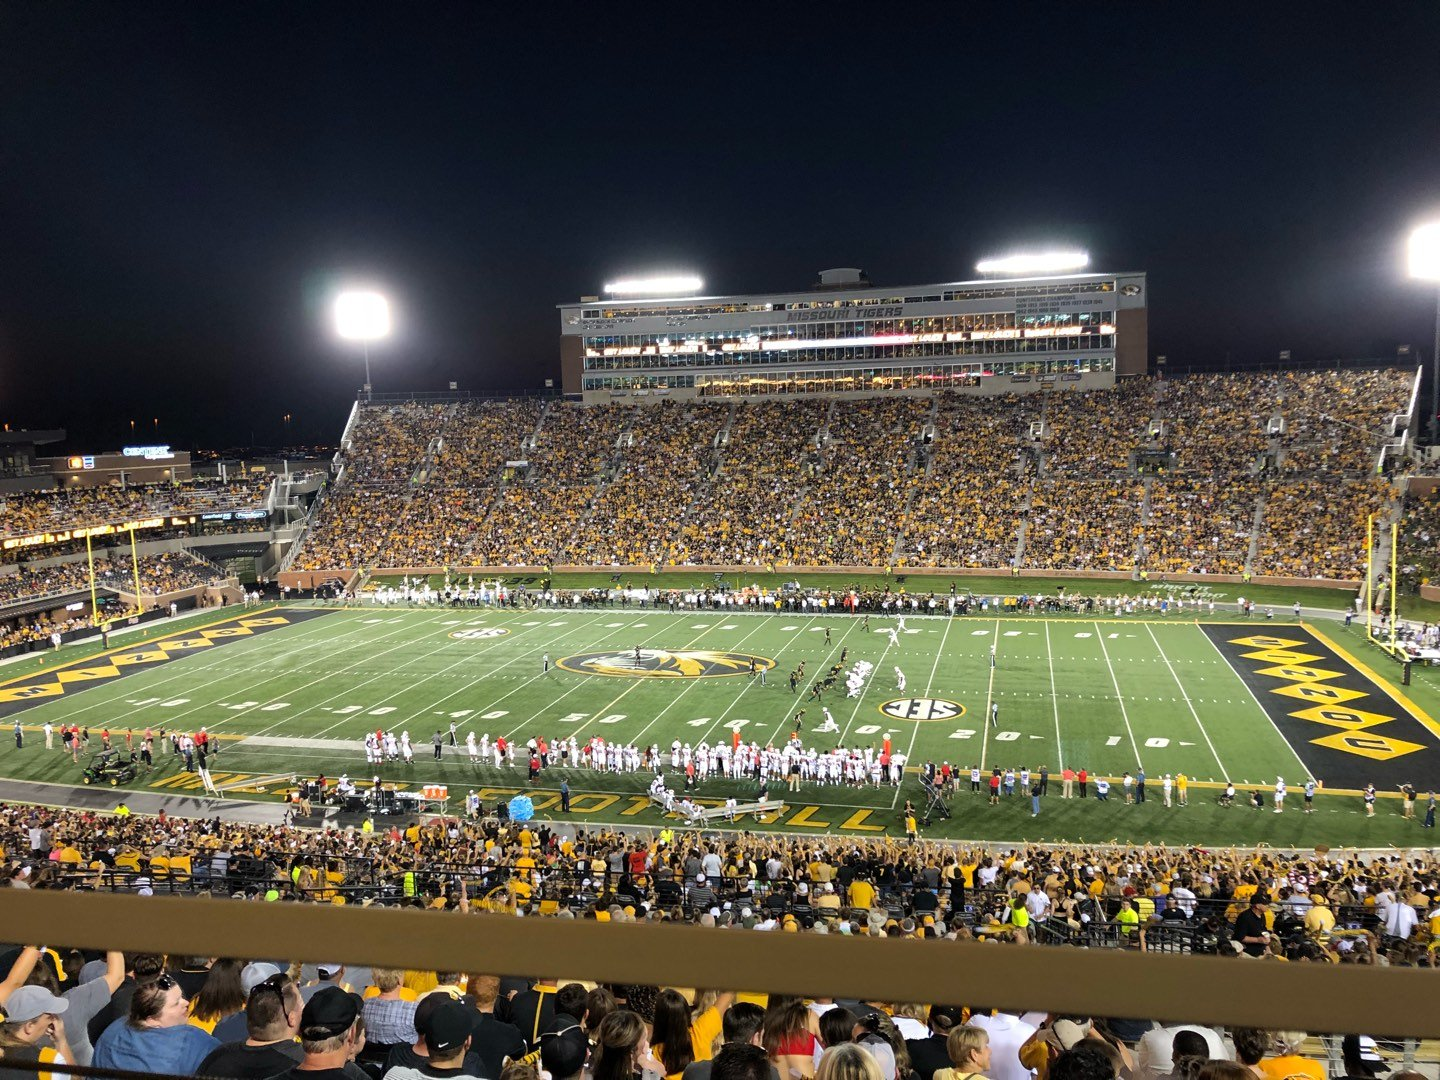 Faurot Field Section 213 Row 1 Seat 3